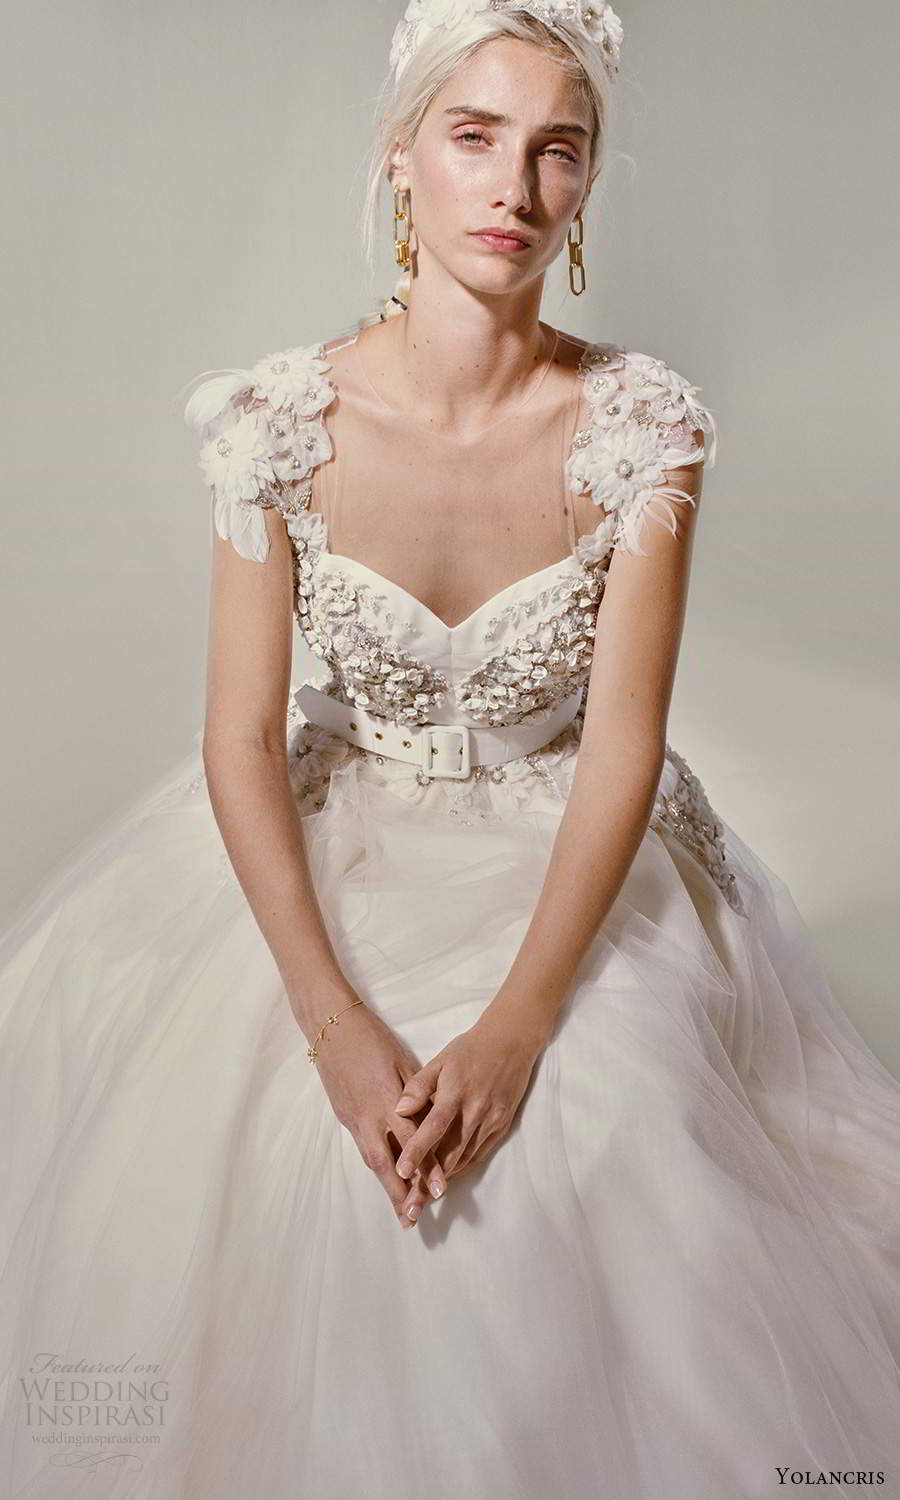 yolancris 2021 bridal cap sleeves sweetheart neckline heavily embellished bodice a line ball gown wedding dress (27) zv